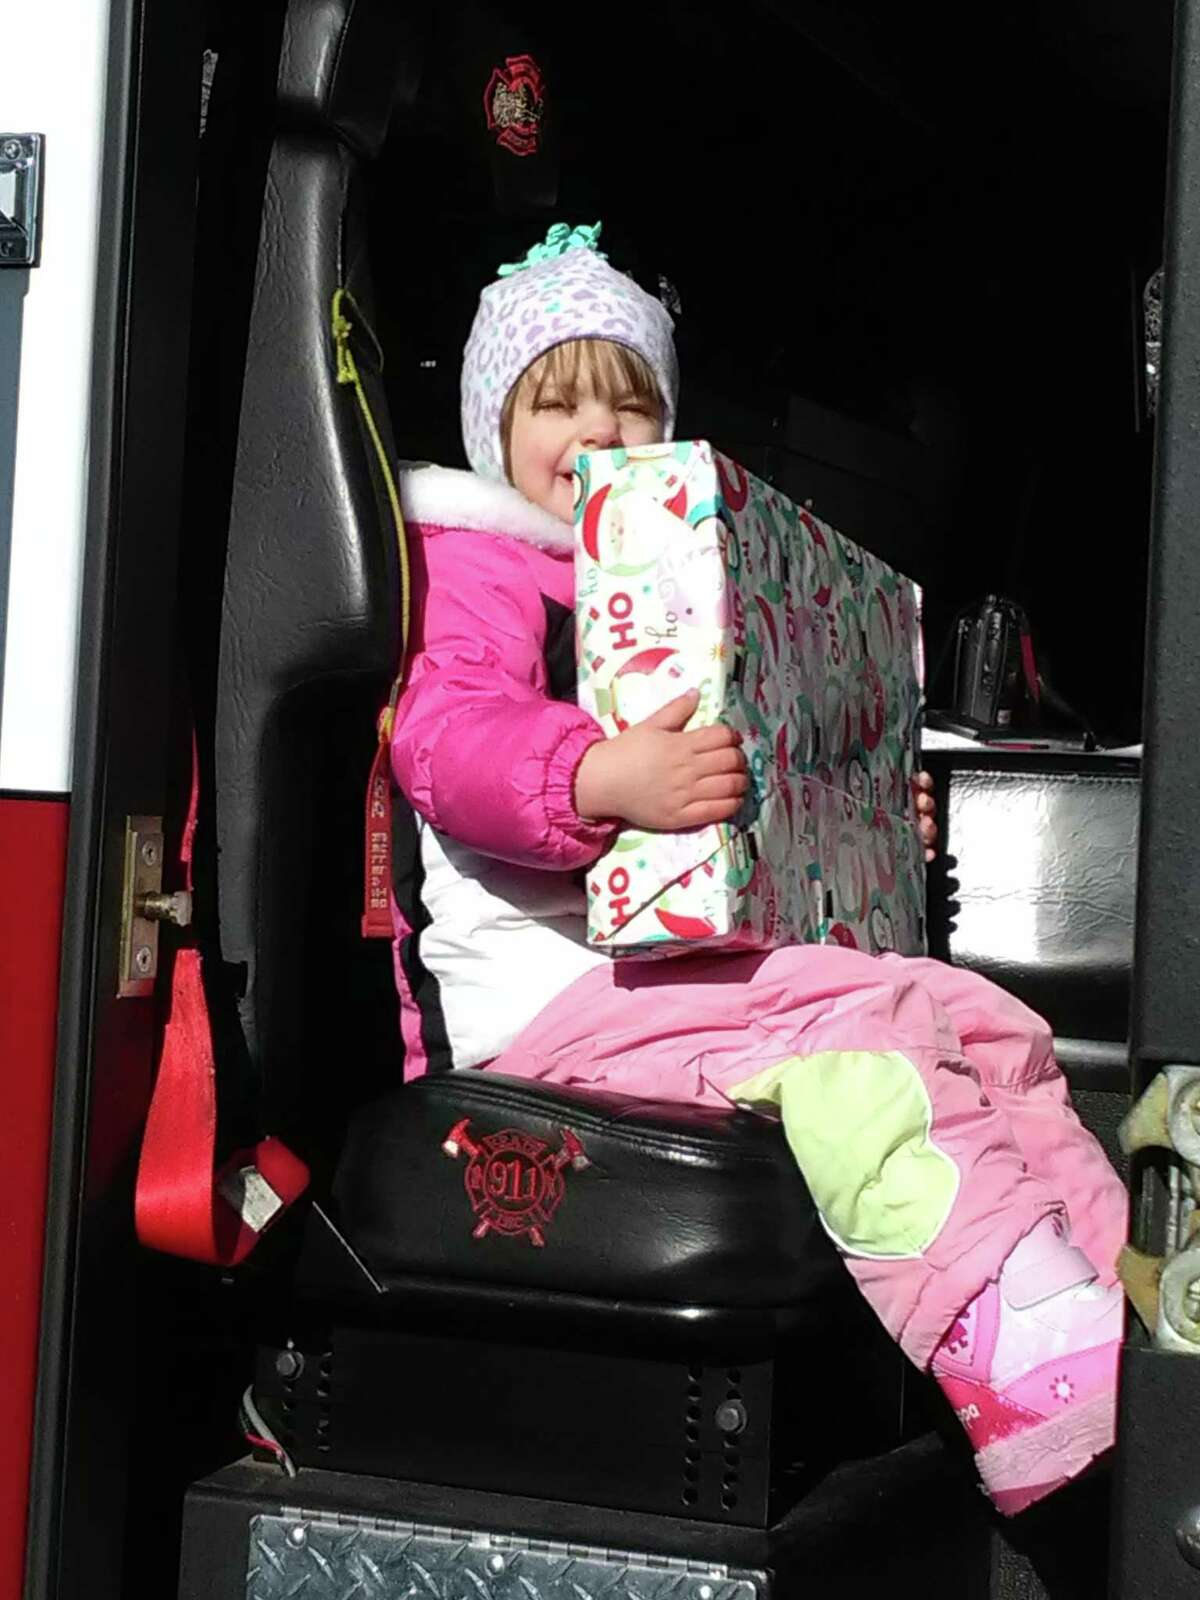 Santa Claus visited families on Eden Lane in New Milford on Sunday, Dec. 10 for Water Witch Hose Company No. 2's annual Santa Express. Each child received a gift from Santa and a chance to sit in the fire truck, including Johnna Morse, 2.